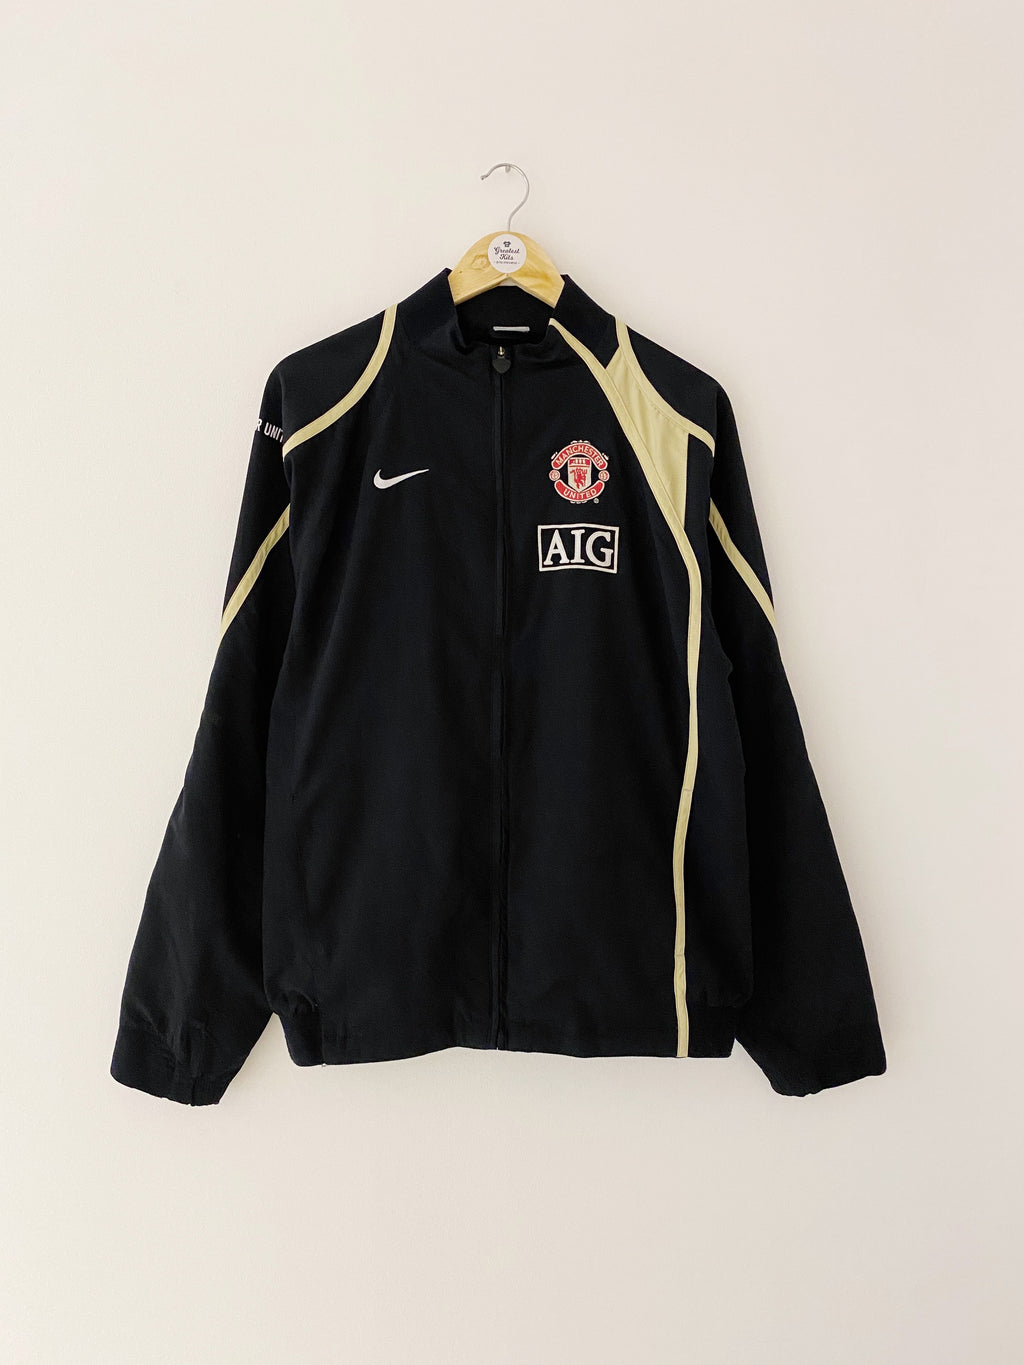 2006/07 Manchester United Training Jacket (L) 10/10